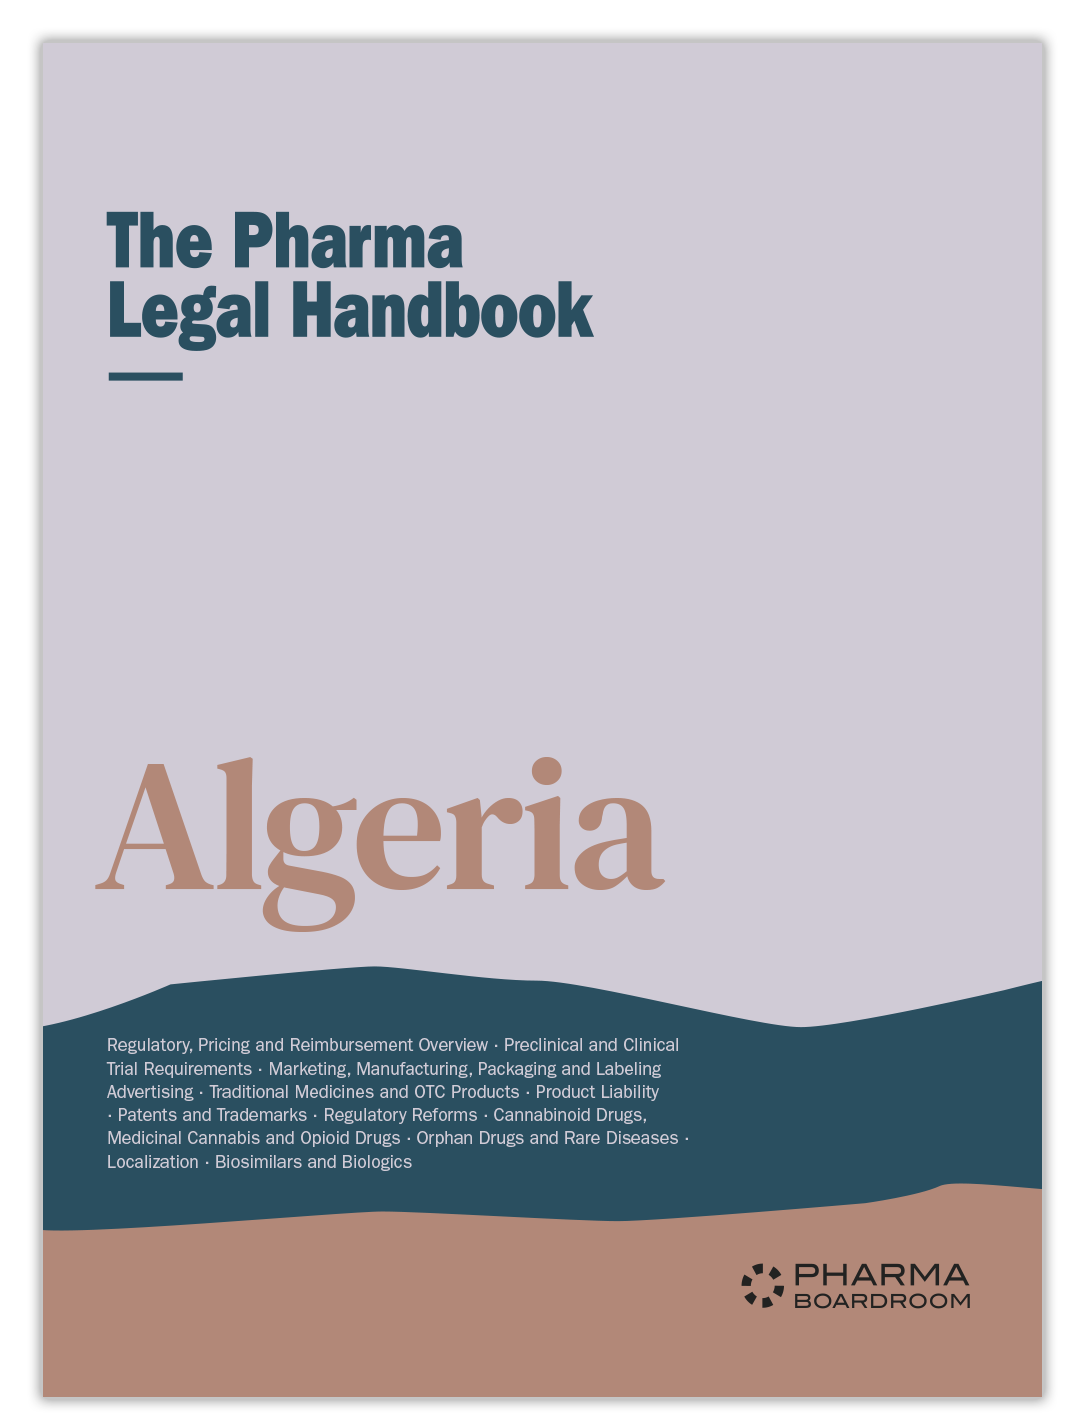 The Pharma Legal Handbook: Algeria